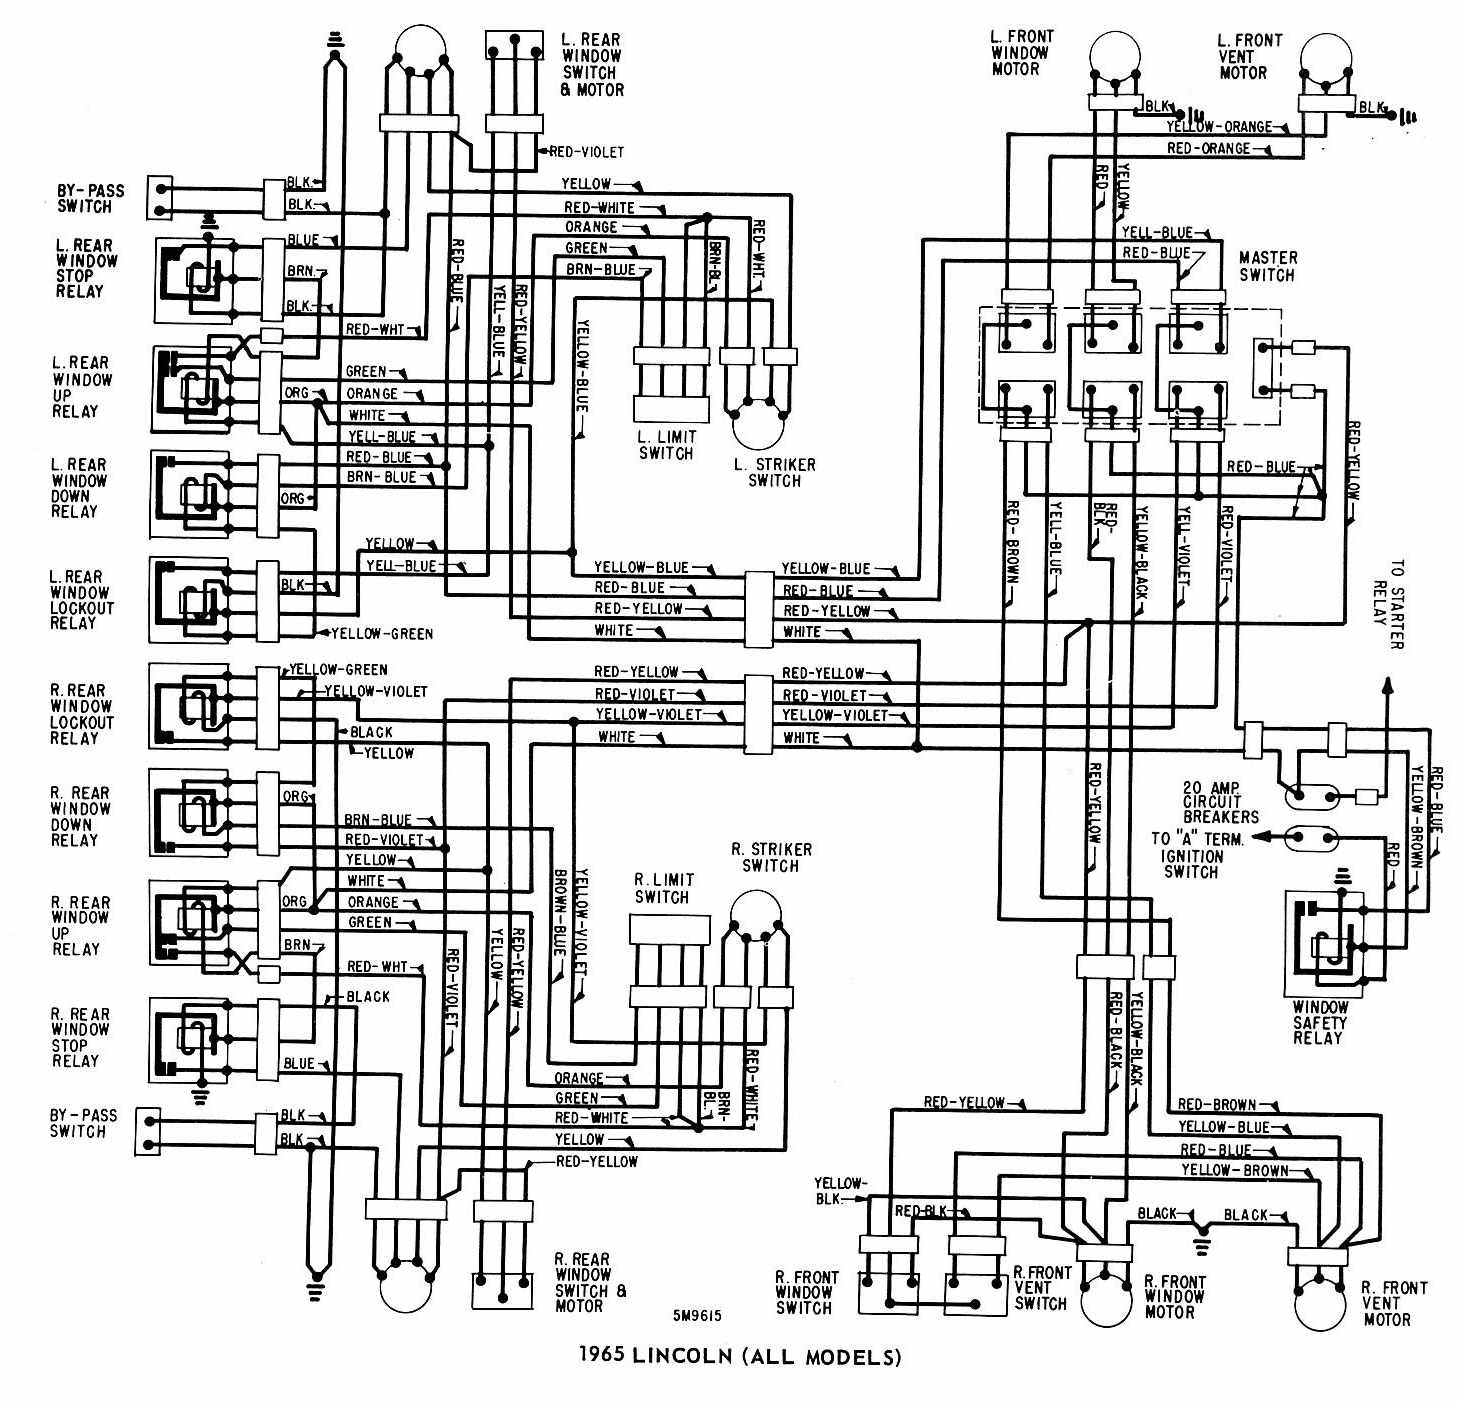 Lincoln+(All+Models)+1965+Windows+Wiring+Diagram lincoln (all models) 1965 windows wiring diagram all about lincoln wiring diagrams at panicattacktreatment.co